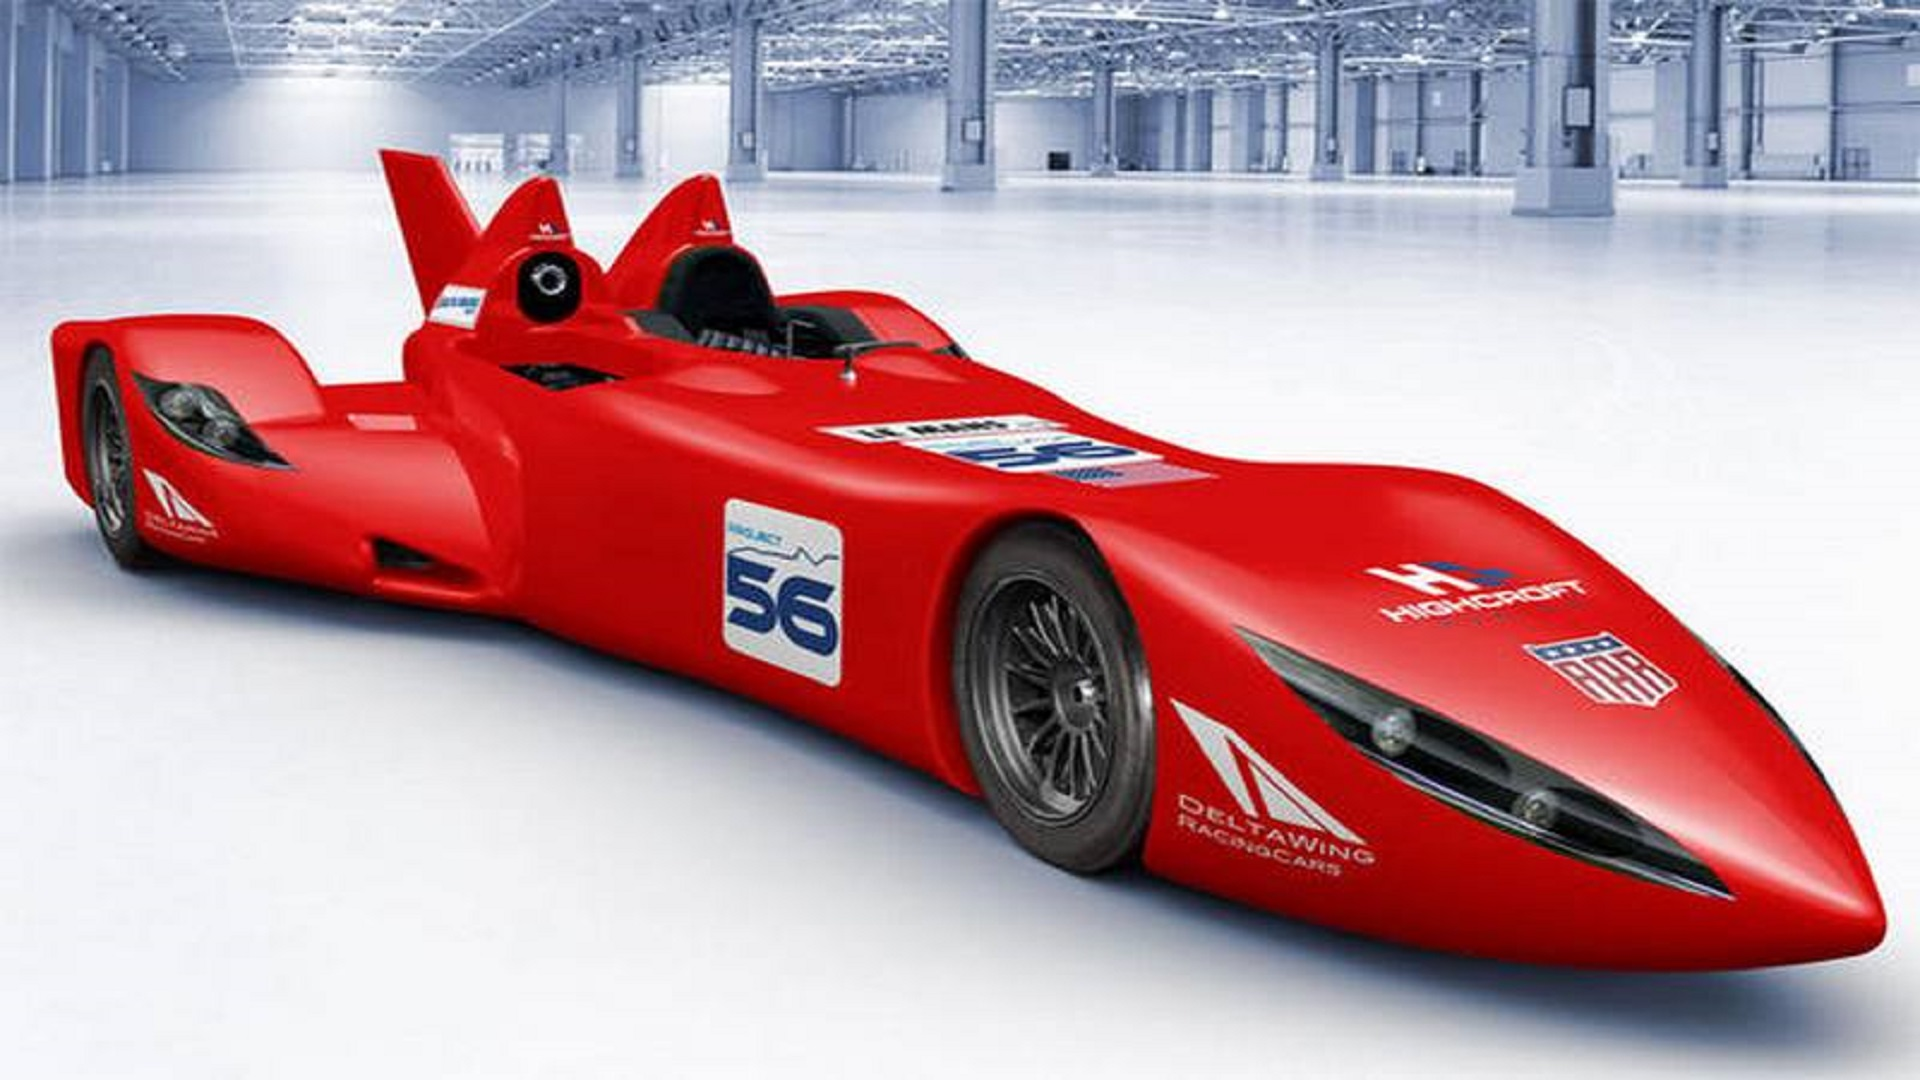 DeltaWing Race Car Project 56 Free Hd Wallpapers